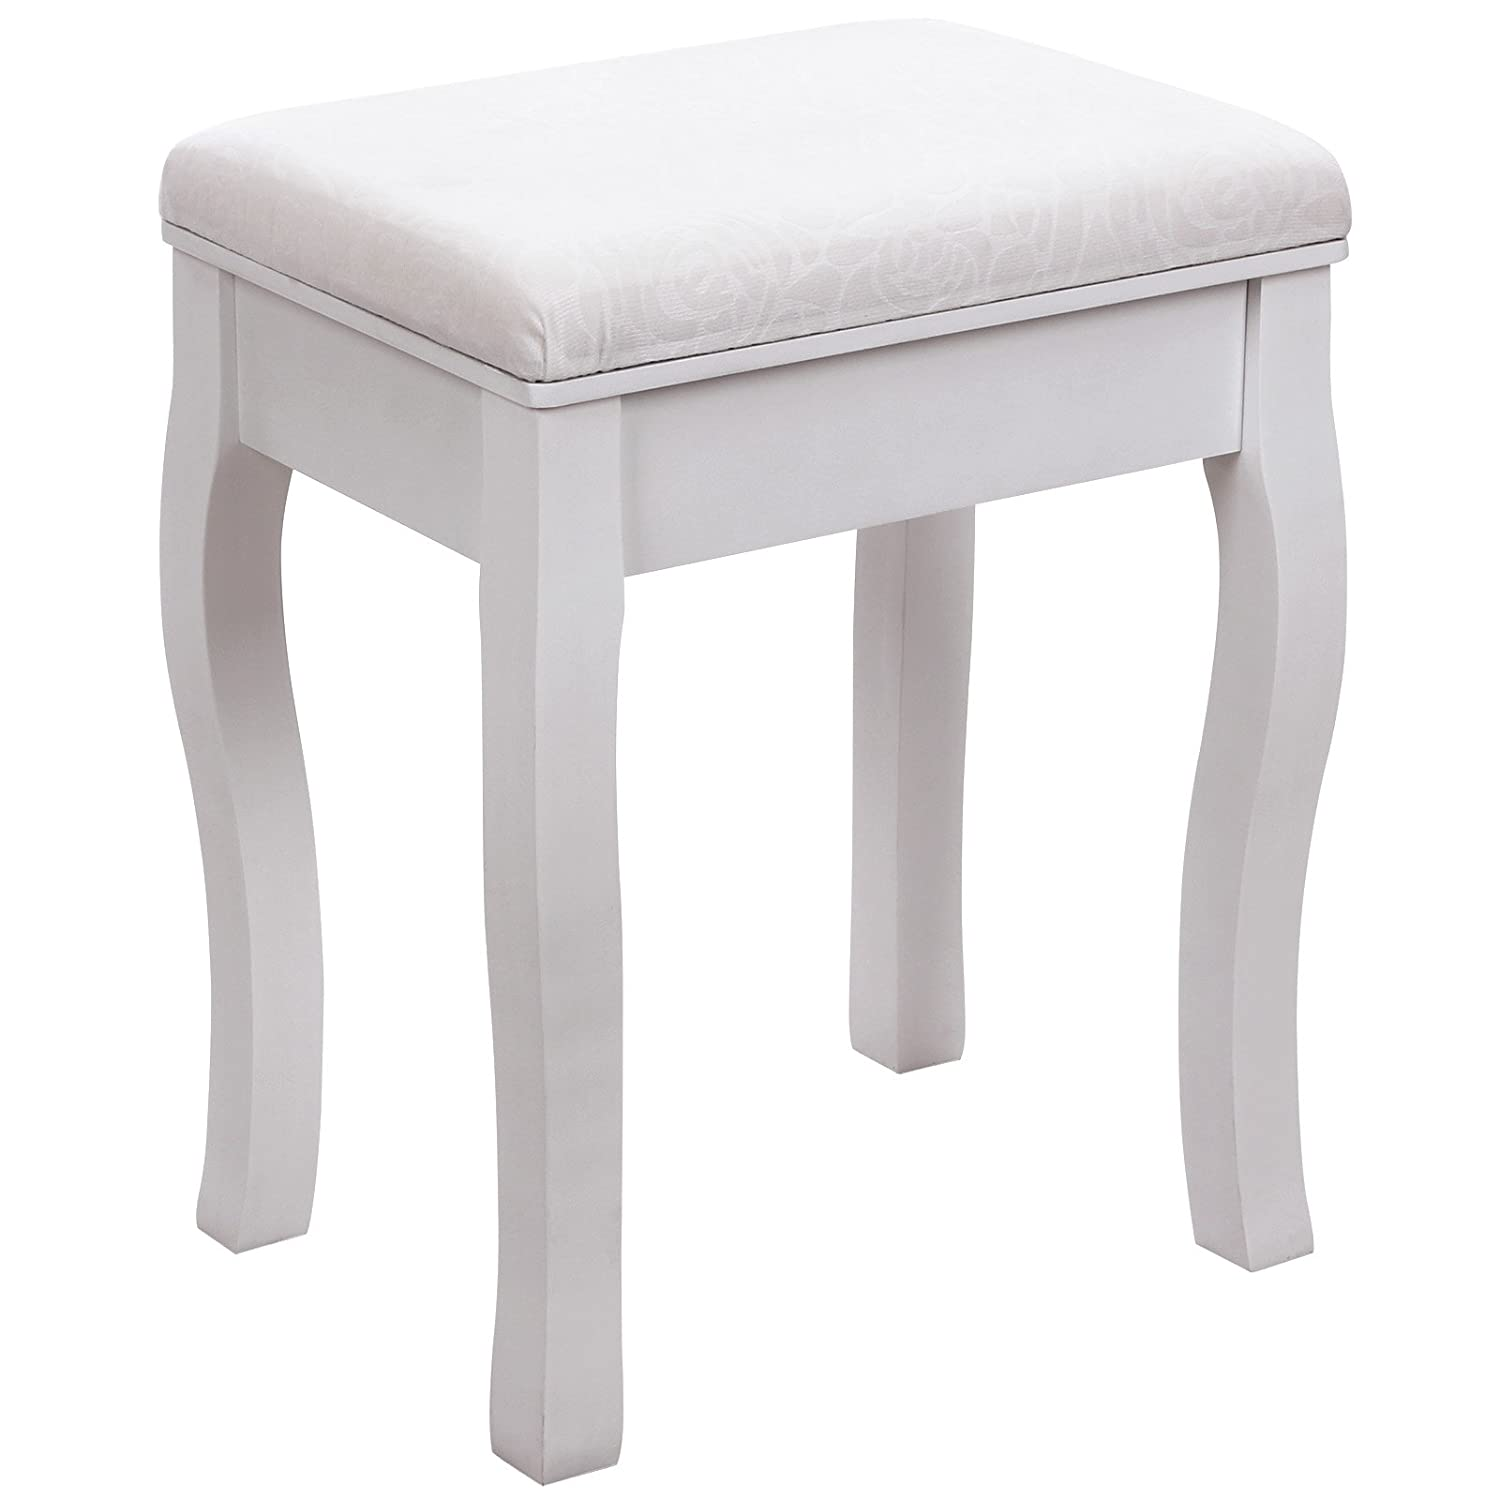 Shabby Chic Bedroom Chairs Uk Amazoncouk Best Sellers The Most Popular Items In Bedroom